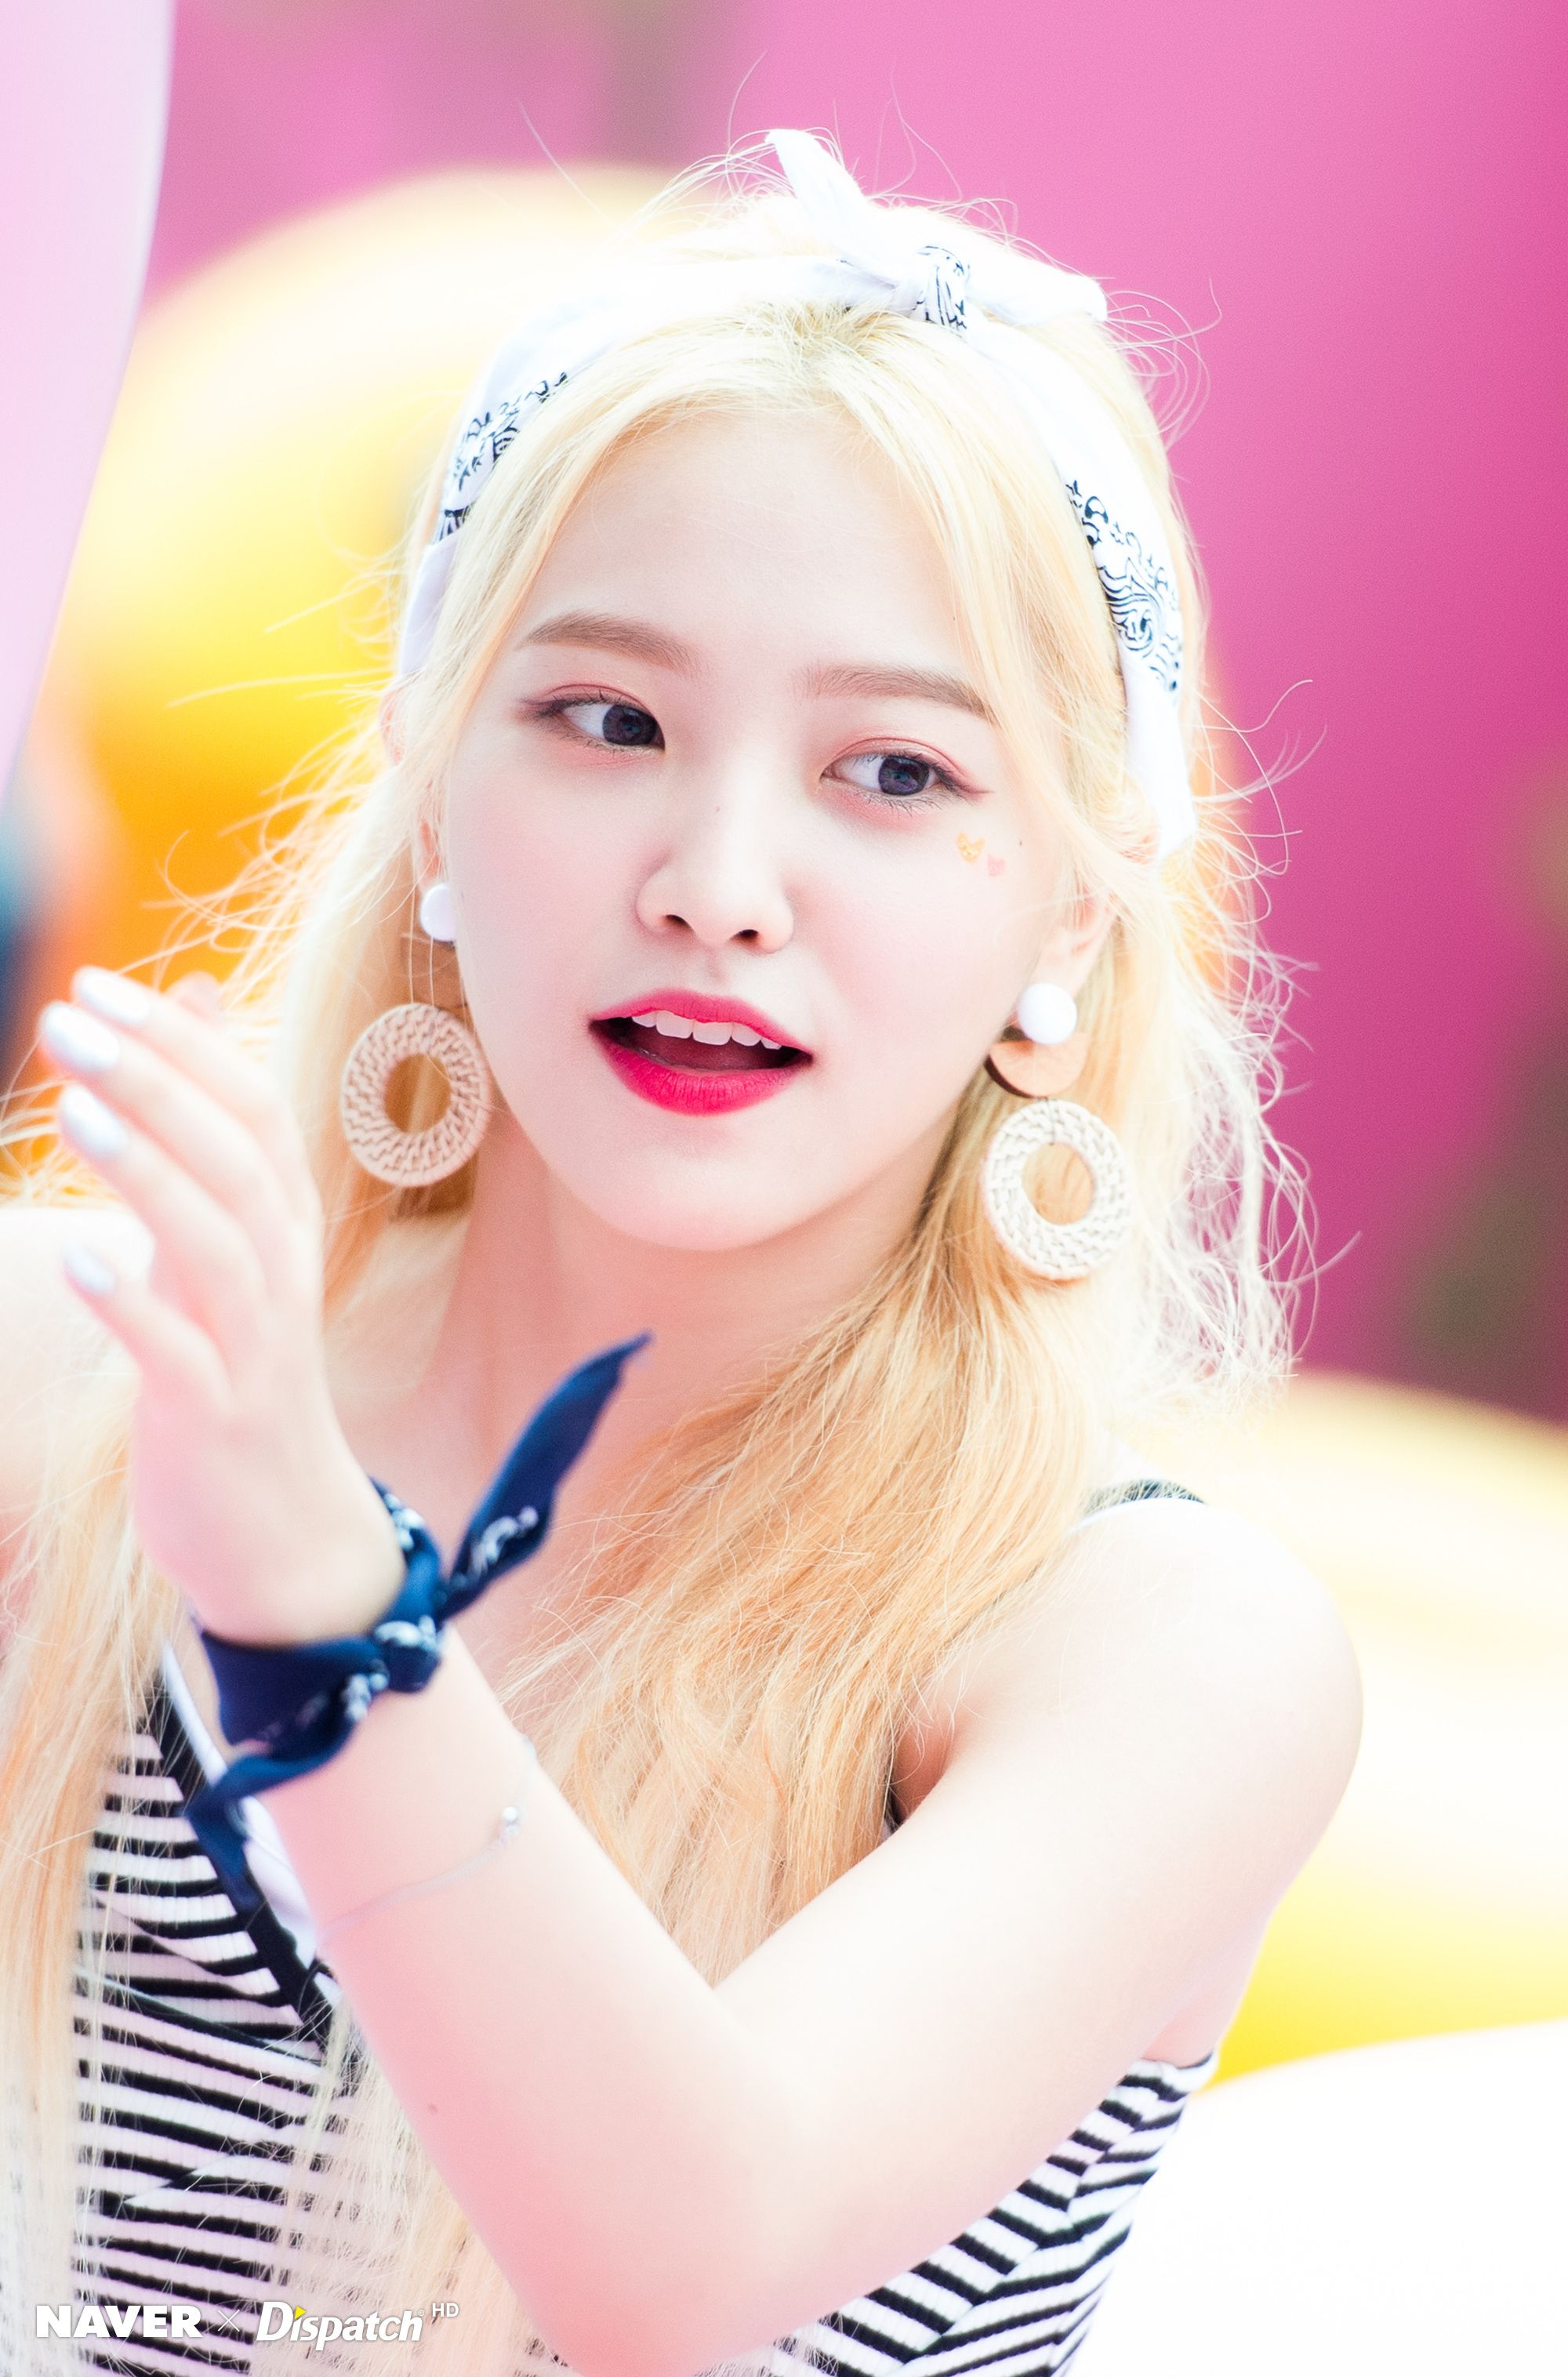 18 Hd Photos From The Red Velvet Pool Party You Wish You Were